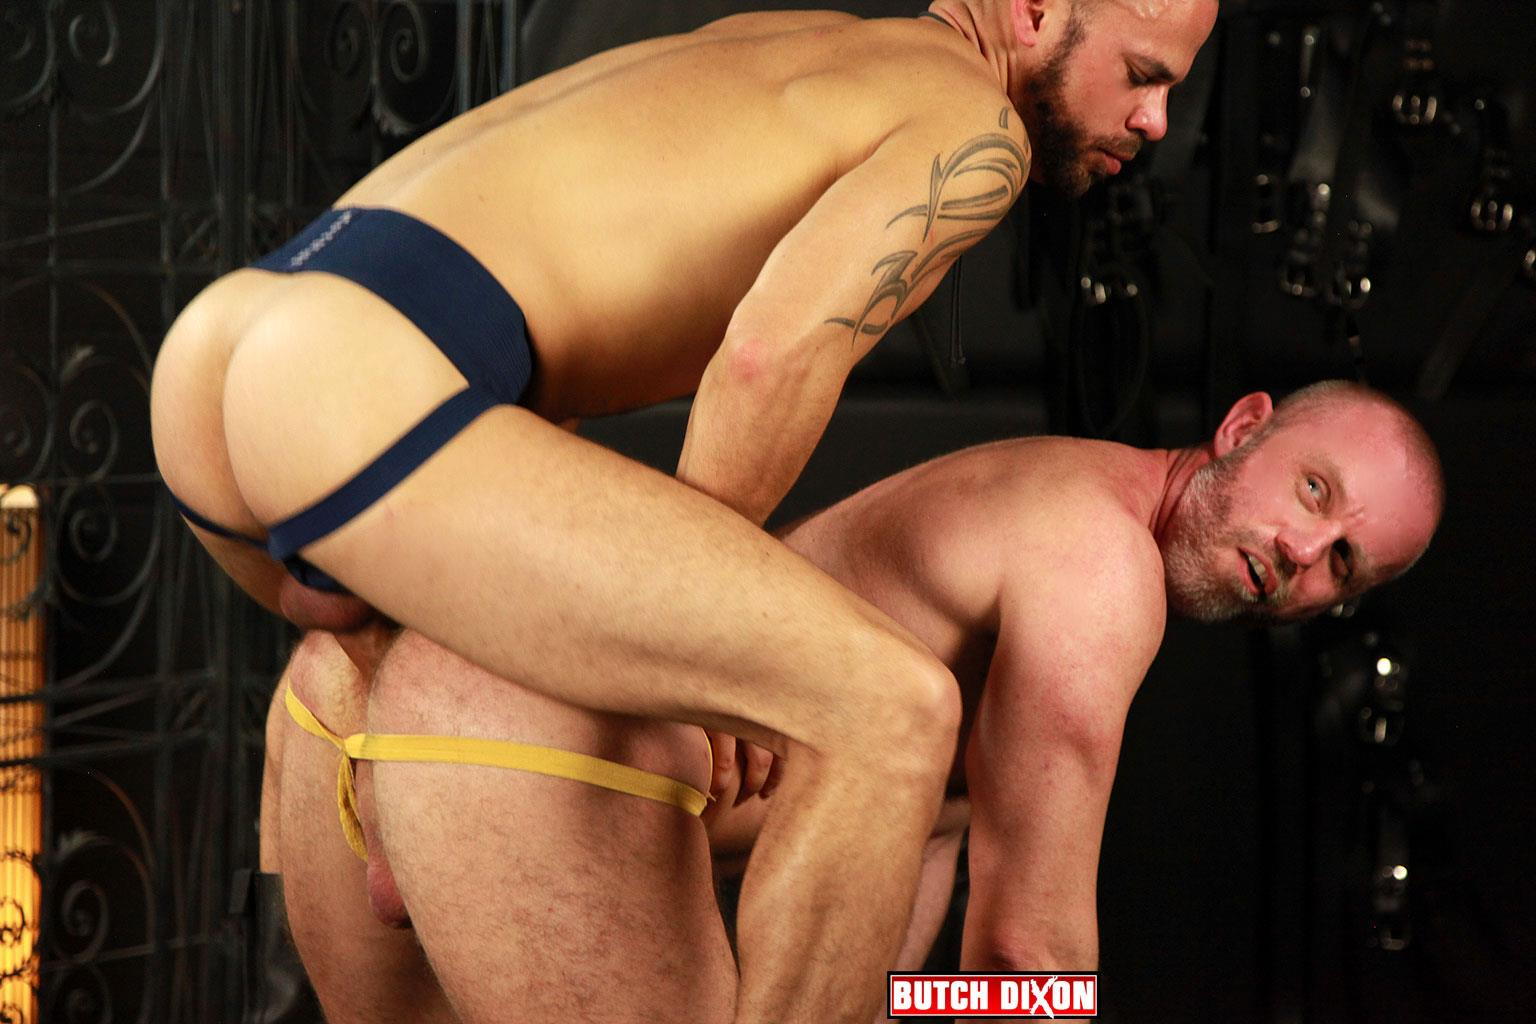 Butch Dixon Delta Kobra and Freddy Miller Barebacking A Hairy Daddy BBBH Amateur Gay Porn 10 Delta Kobra Barebacking A Hairy Daddy With His Big Uncut Cock